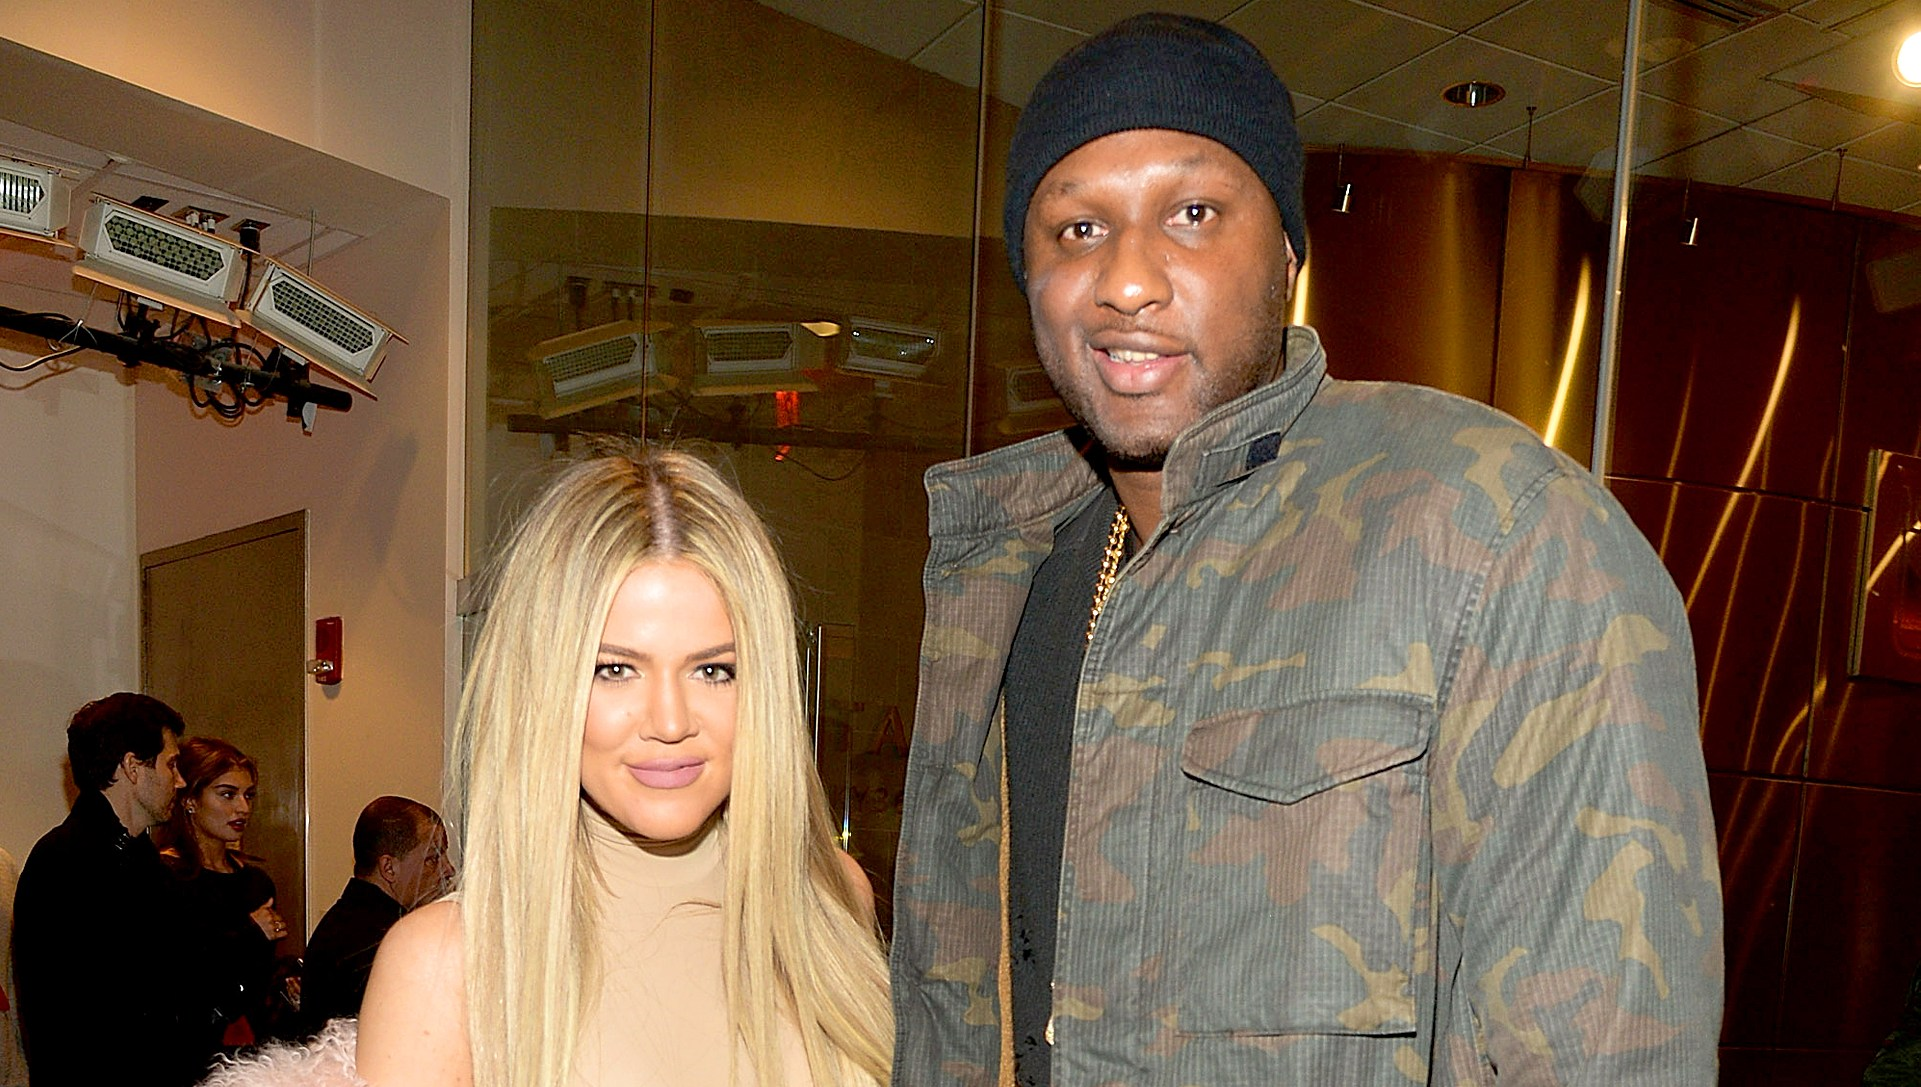 Khloe Kardashian and Lamar Odom attend Kanye West Yeezy Season 3 at Madison Square Garden on February 11, 2016 in New York City.